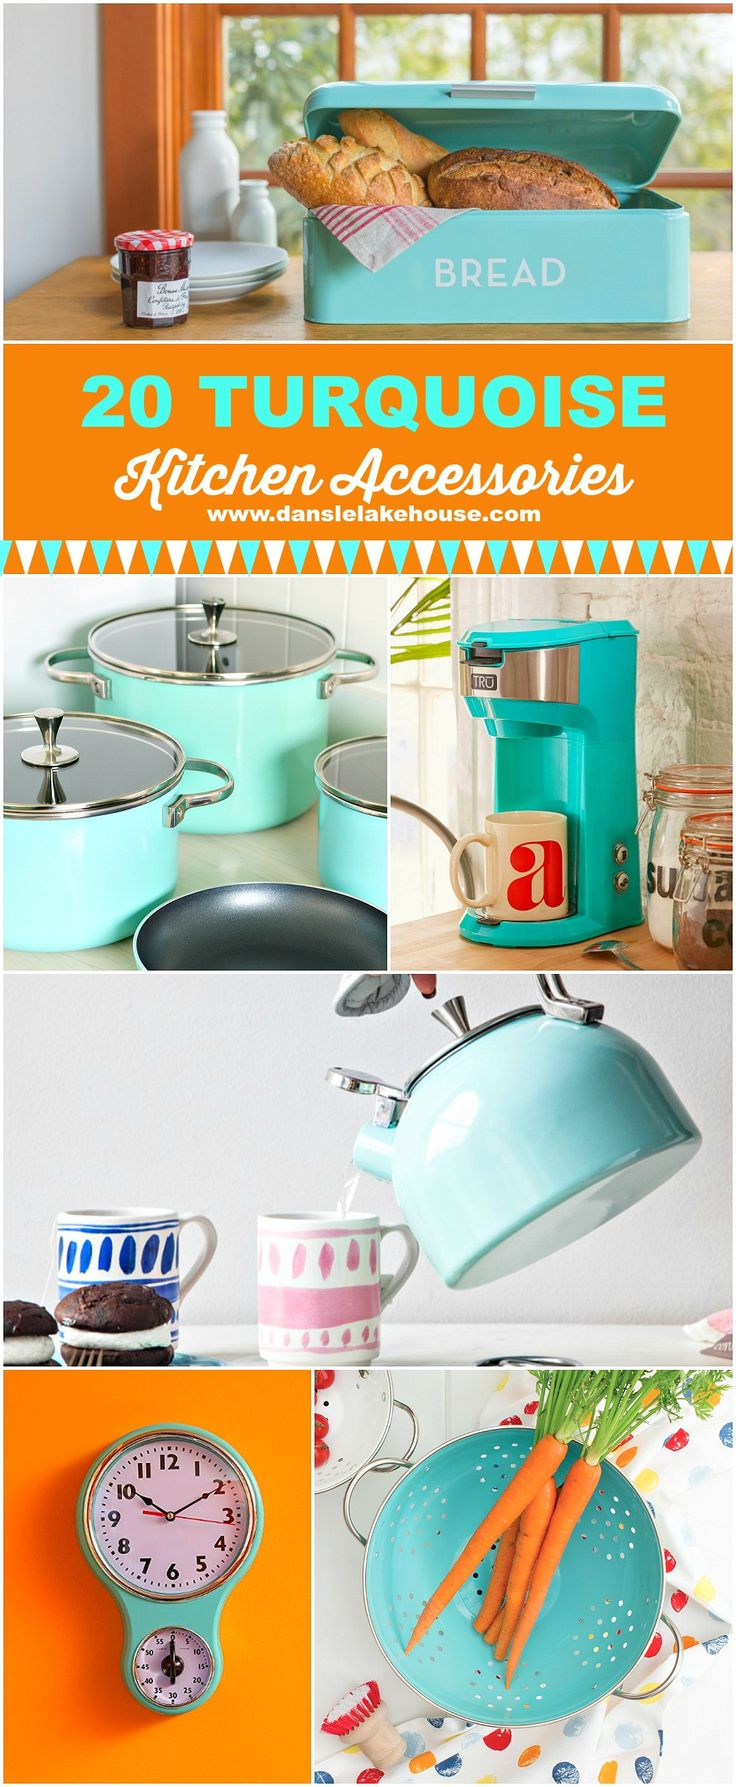 20 Gorgeous Turquoise Kitchen Accessories - from pots and pans to cute storage, this all-aqua guide will make you smile // Gift Guide for Turquoise Lovers // Vintage Kitchen